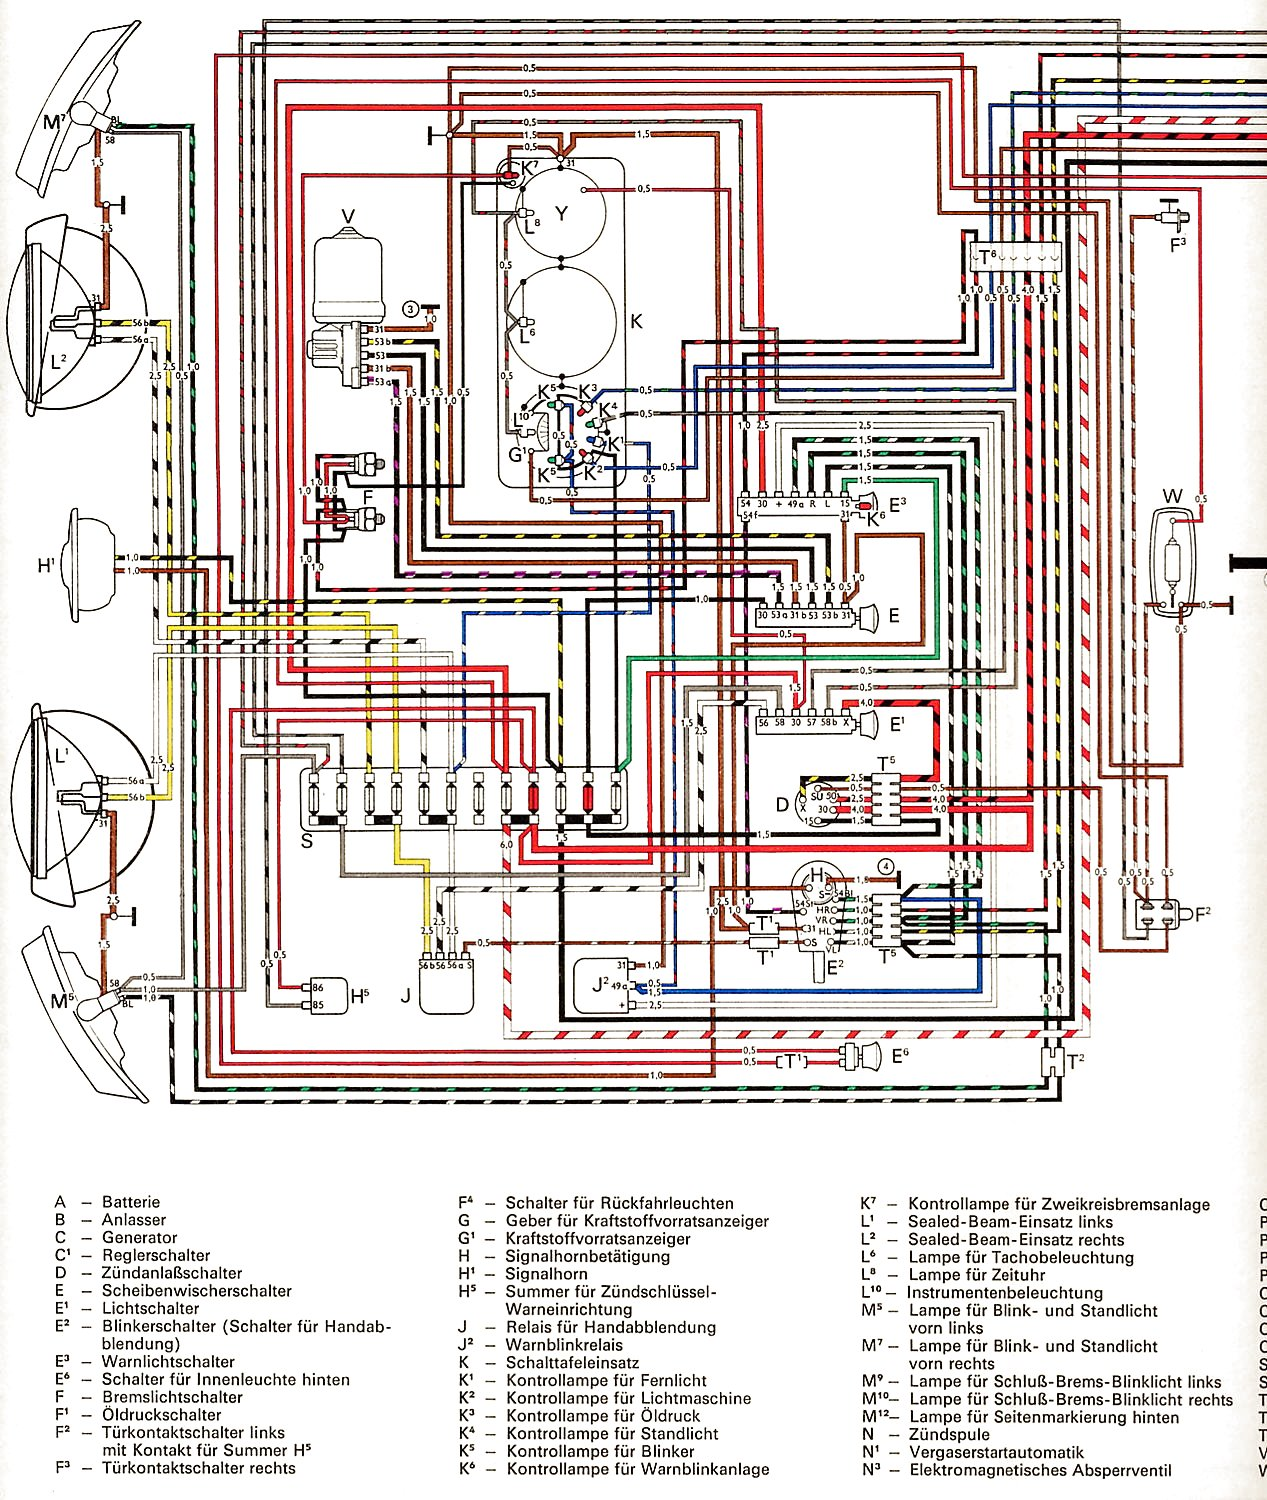 Vw wiring diagram wiring diagrams schematics vintagebus com vw bus and other wiring diagrams vw wiring diagram 6 vw wiring diagram swarovskicordoba Choice Image